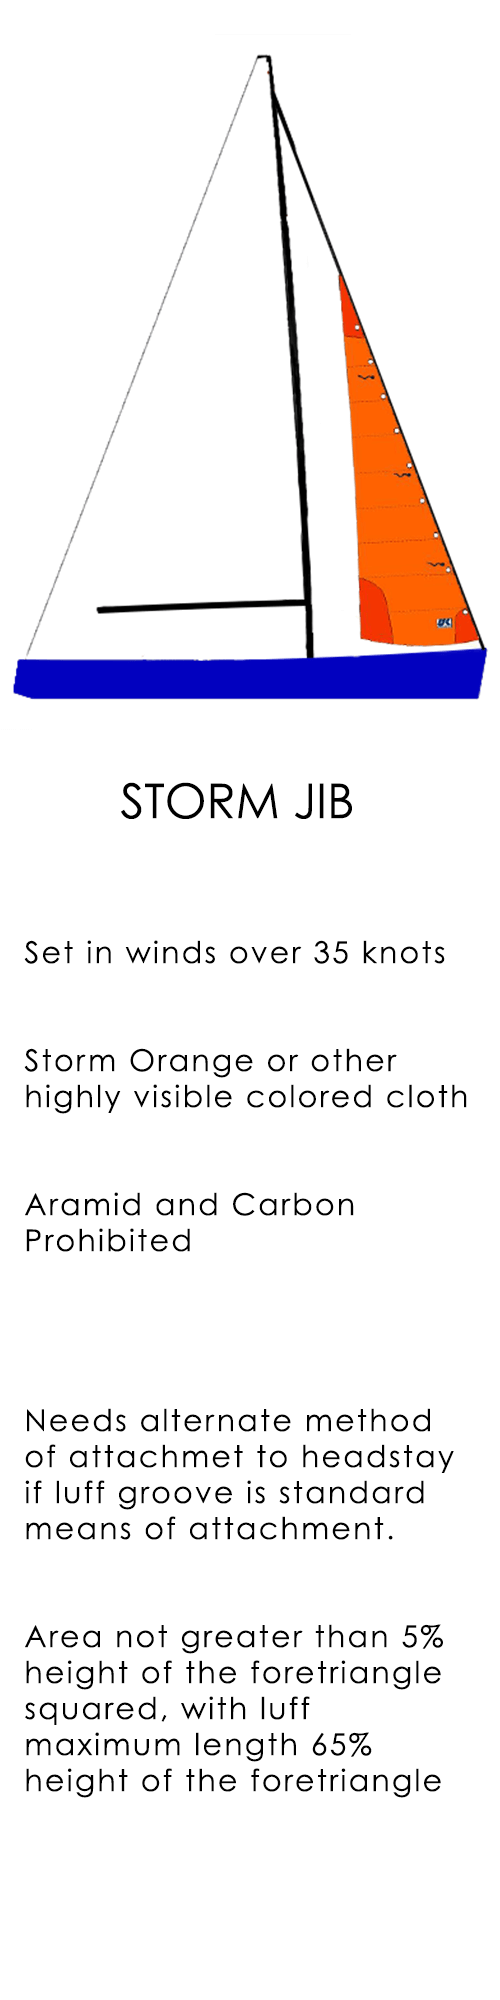 UK+Sailmakers+Storm+Jib